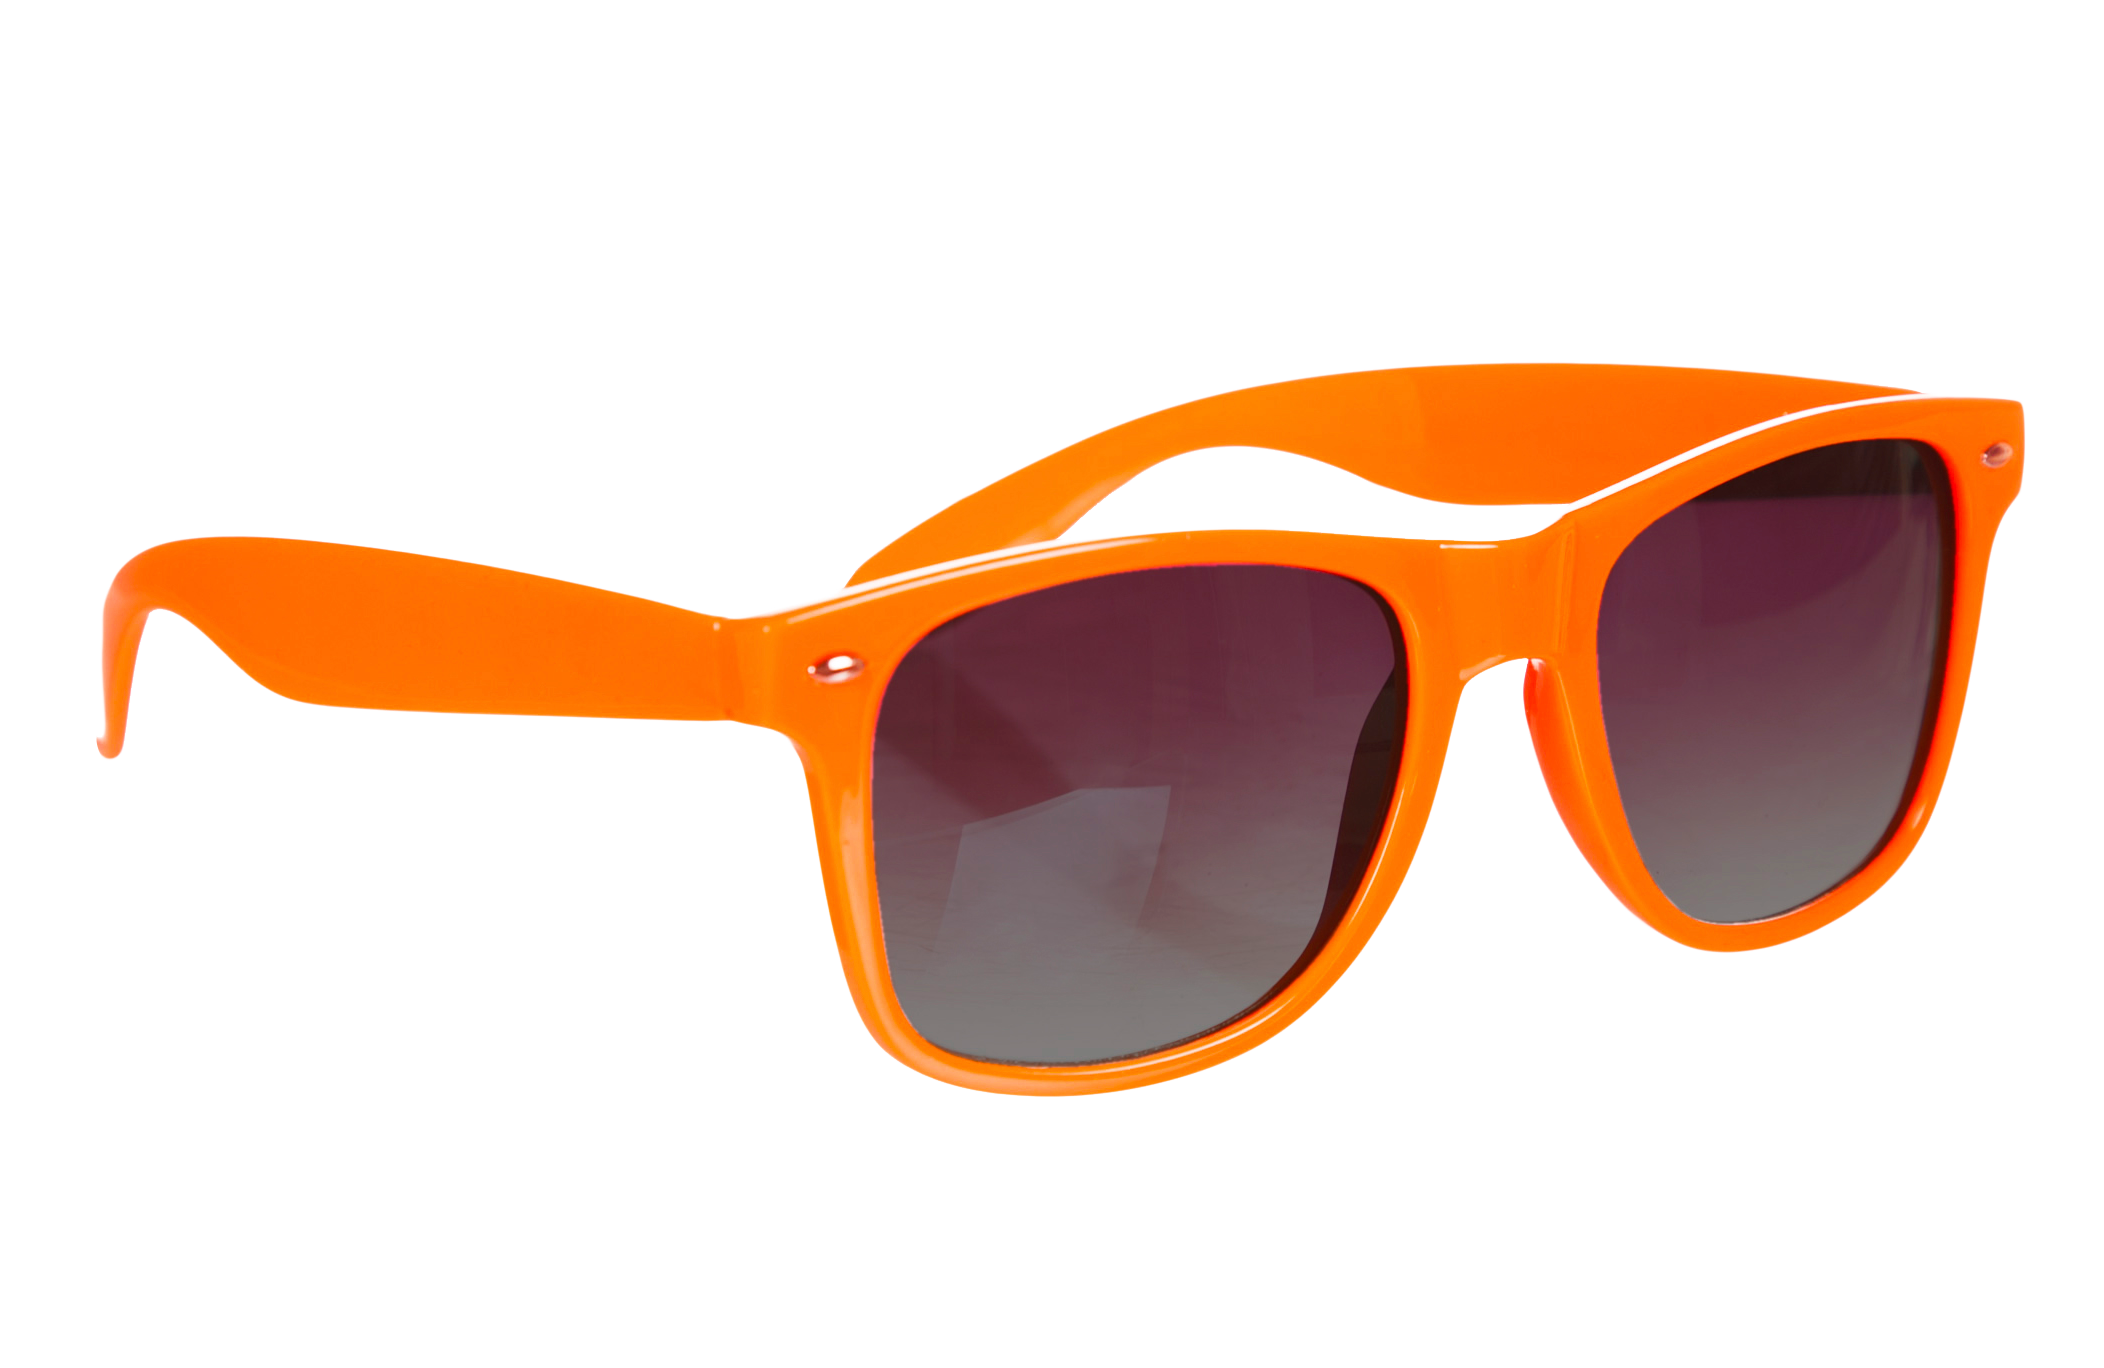 Sunglass PNG Transparent Image - Sunglasses PNG